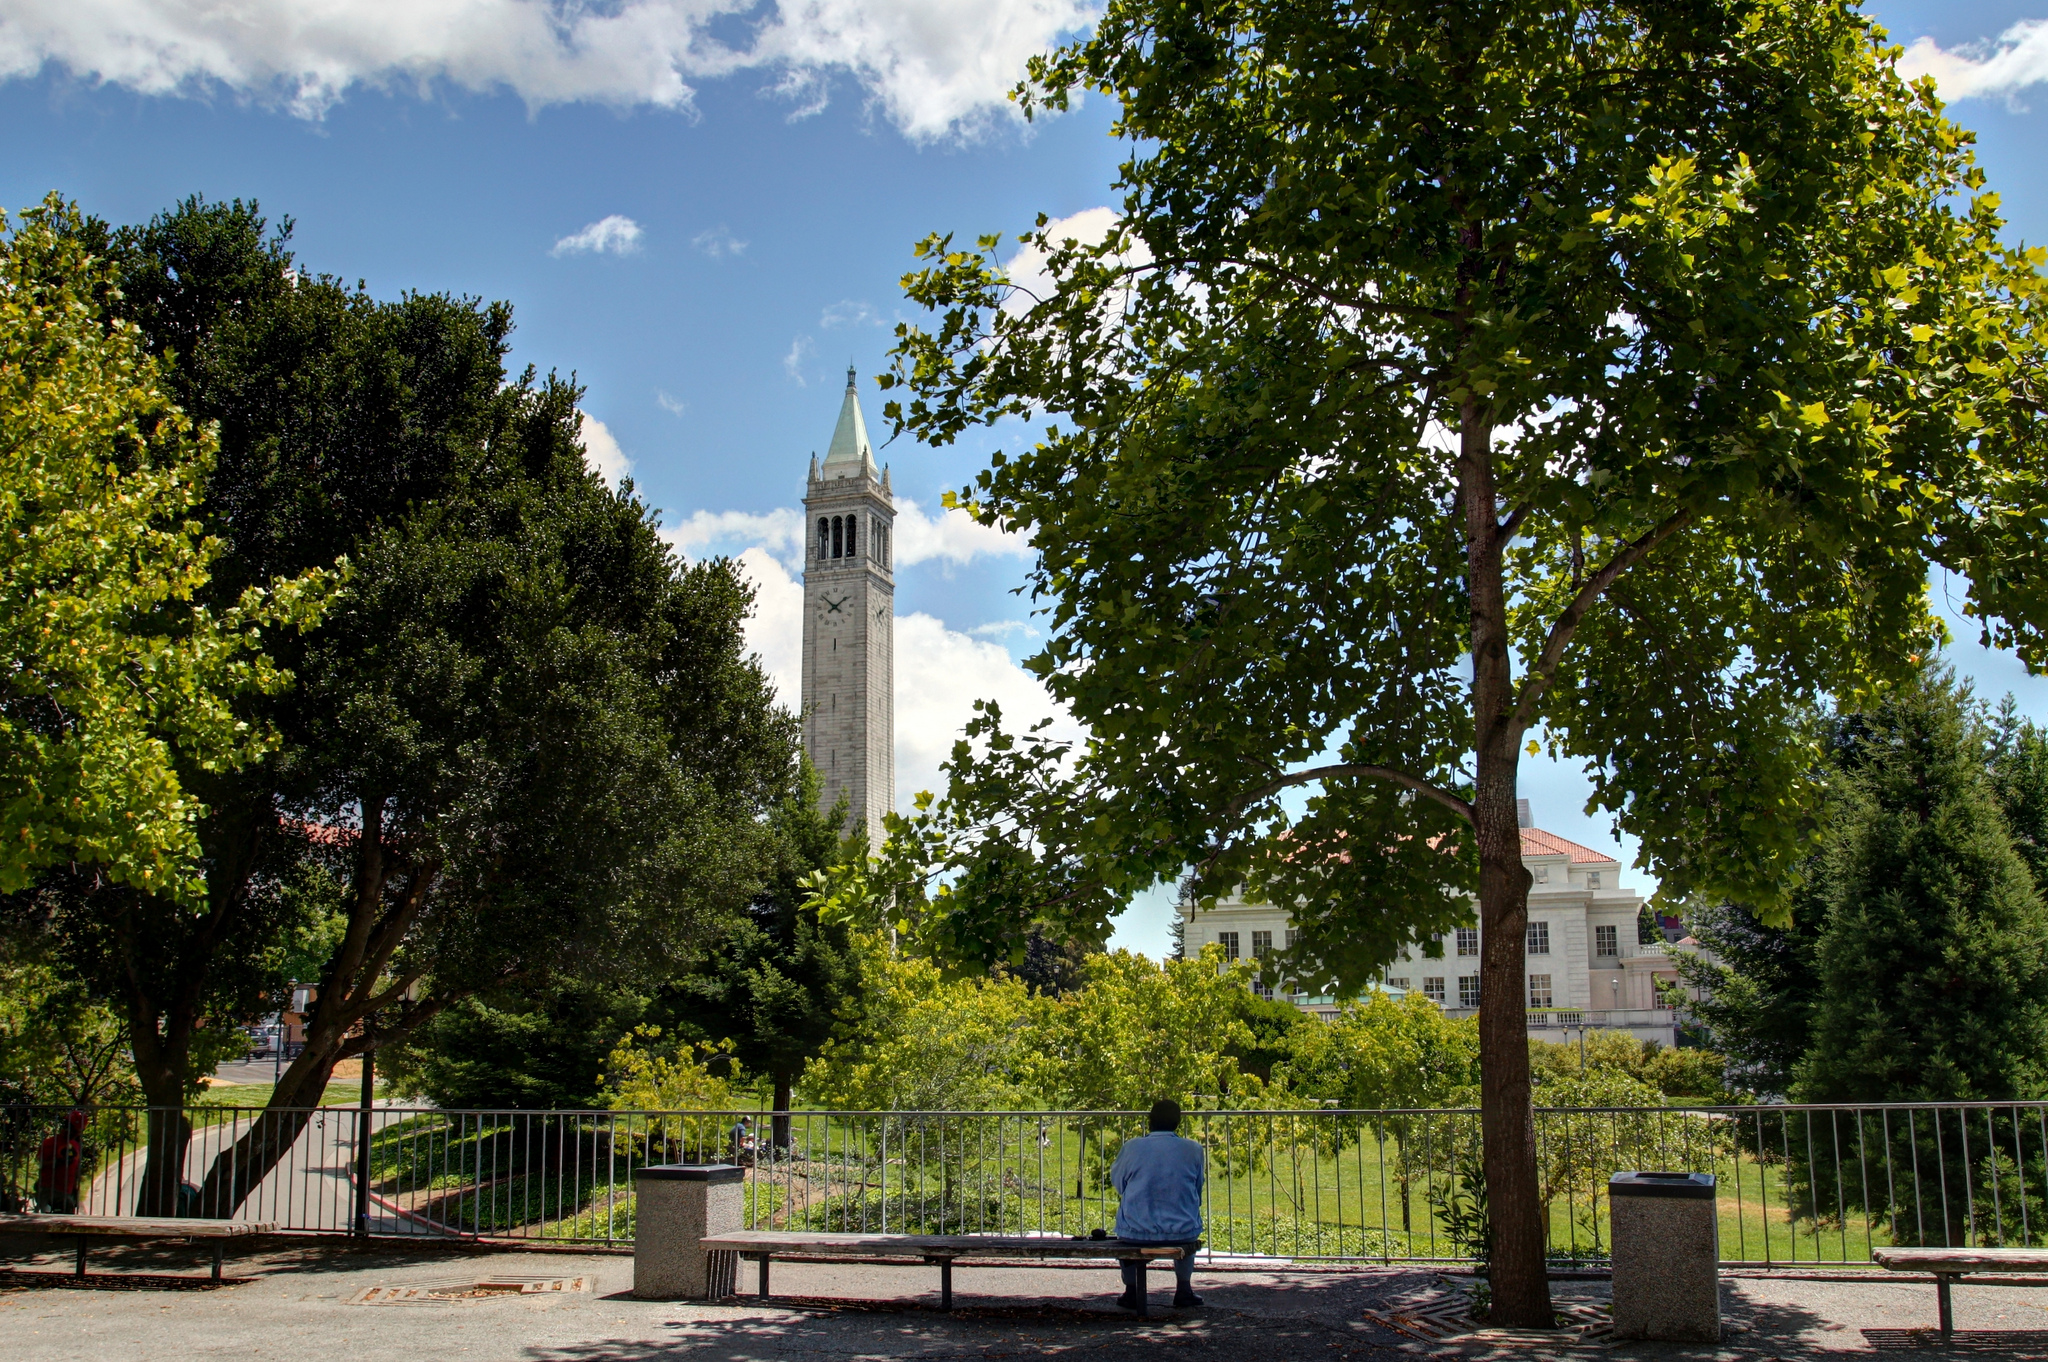 Scenes from UC Berkeley - Man on Bench by John Morgan is Licensed under CC by 2.0